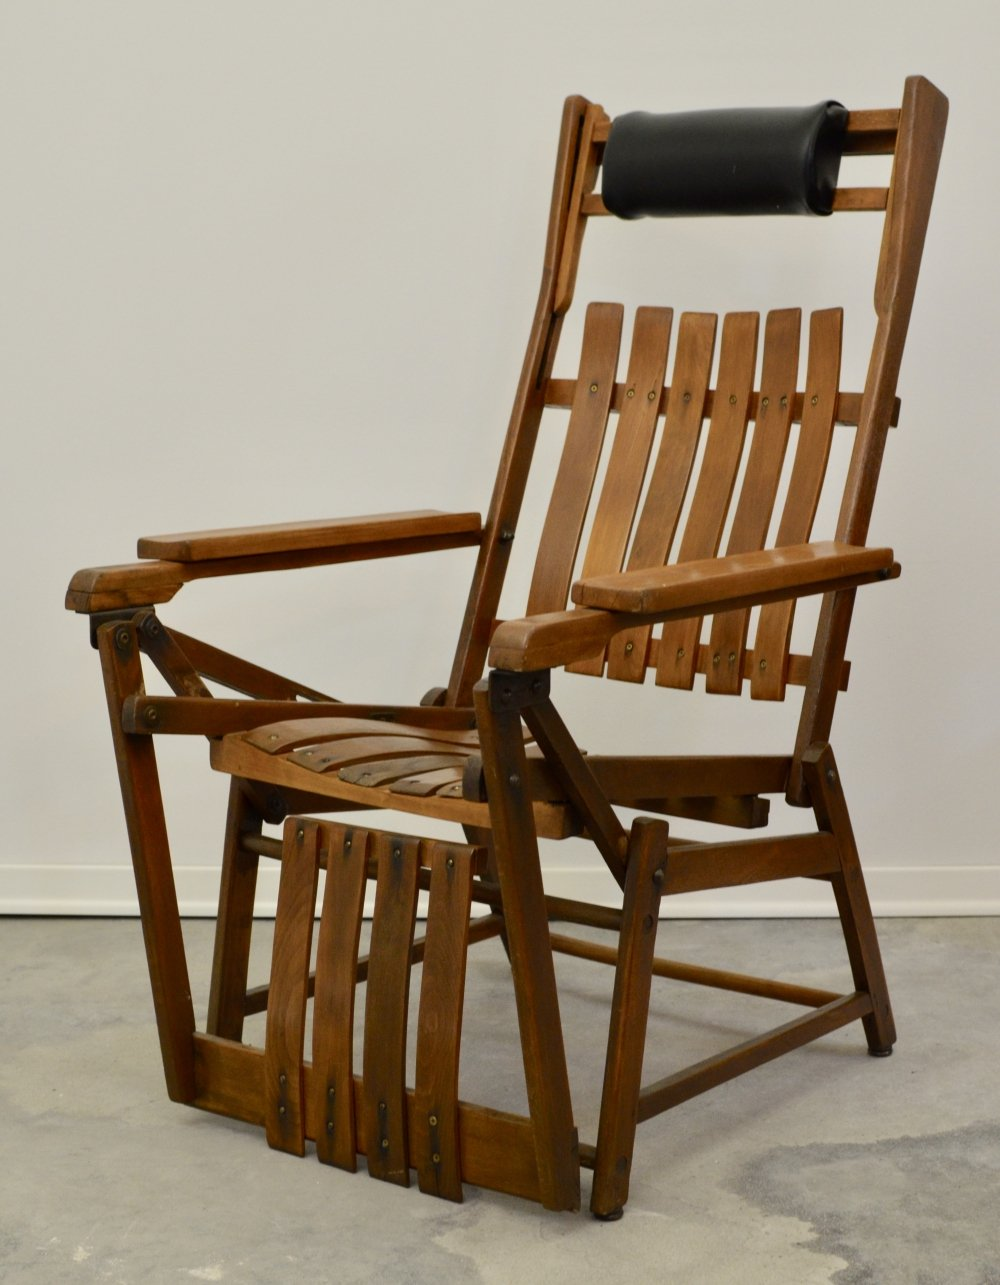 Siesta Medizinal lounge chair by Hans & Wassili Luckhardt for Thonet, 1930s